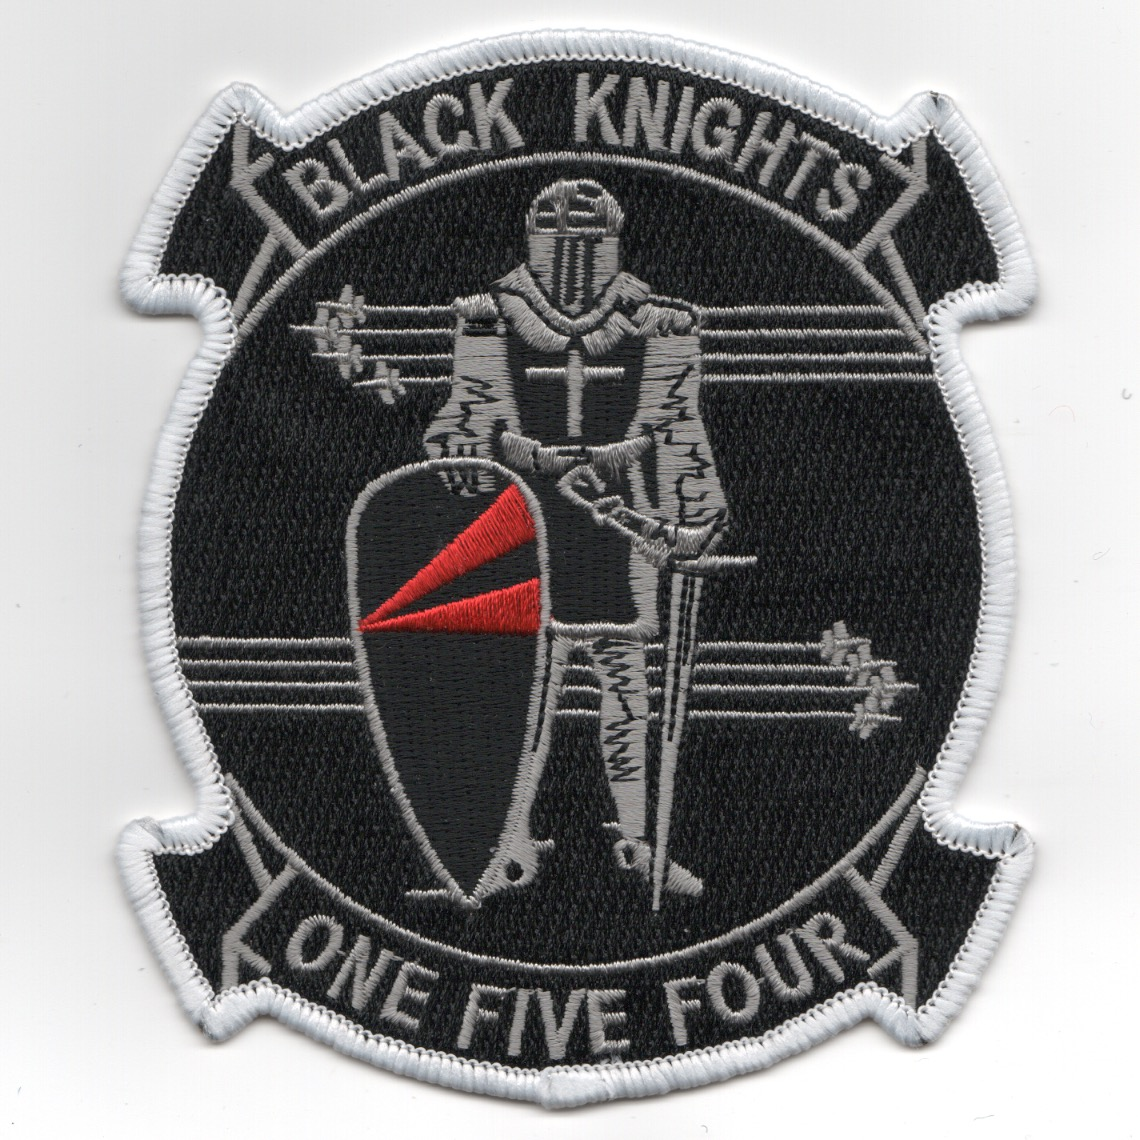 VF-154 Squadron Patch (White on Gray)